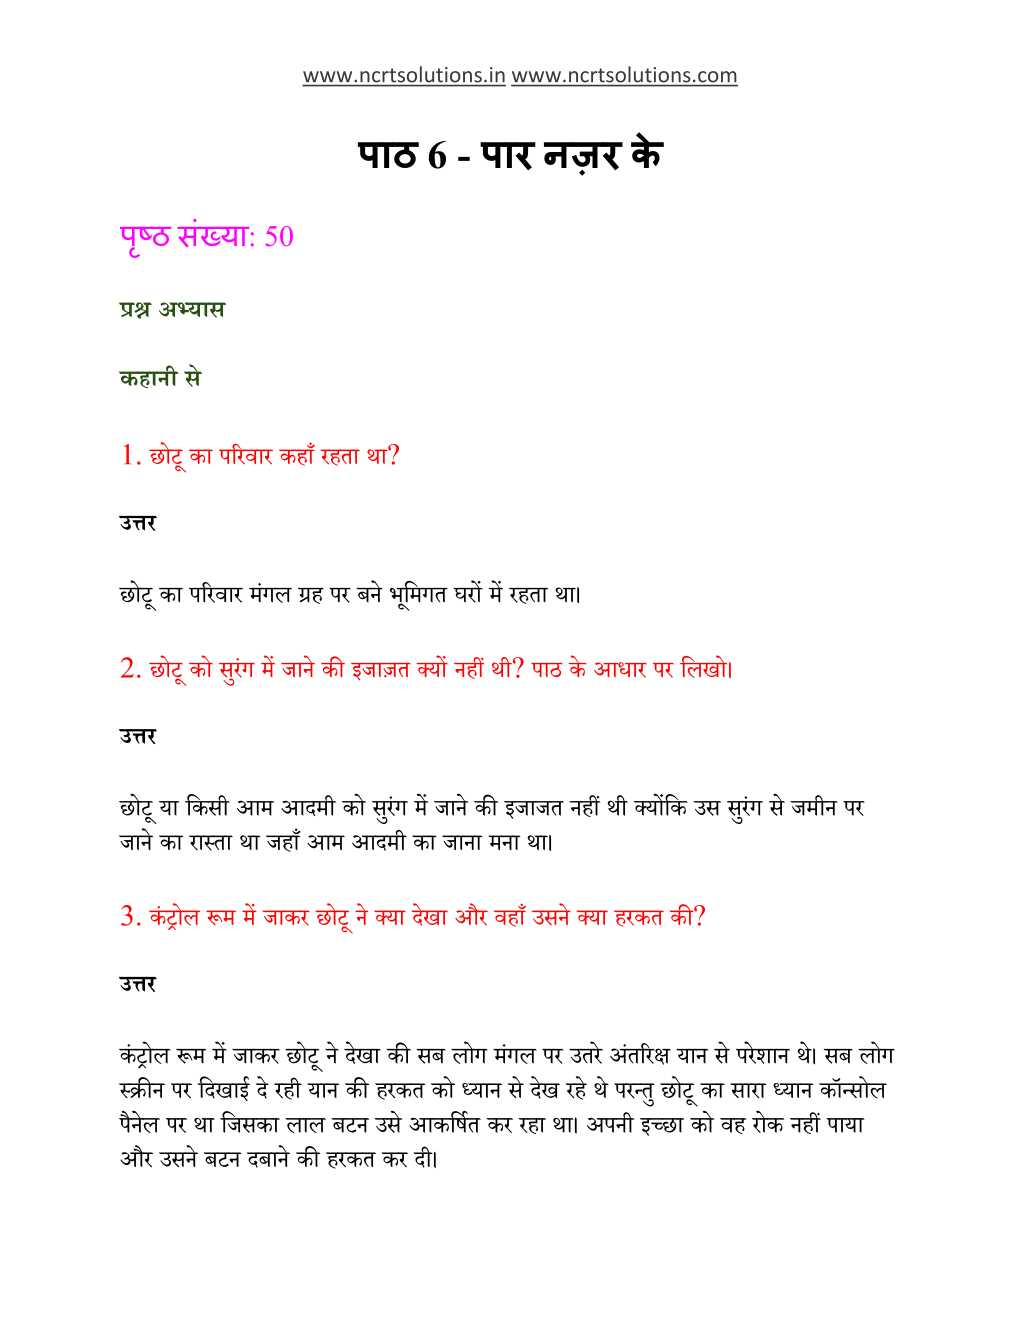 NCERT Solutions For Class 6 Hindi Vasant Chapter 6